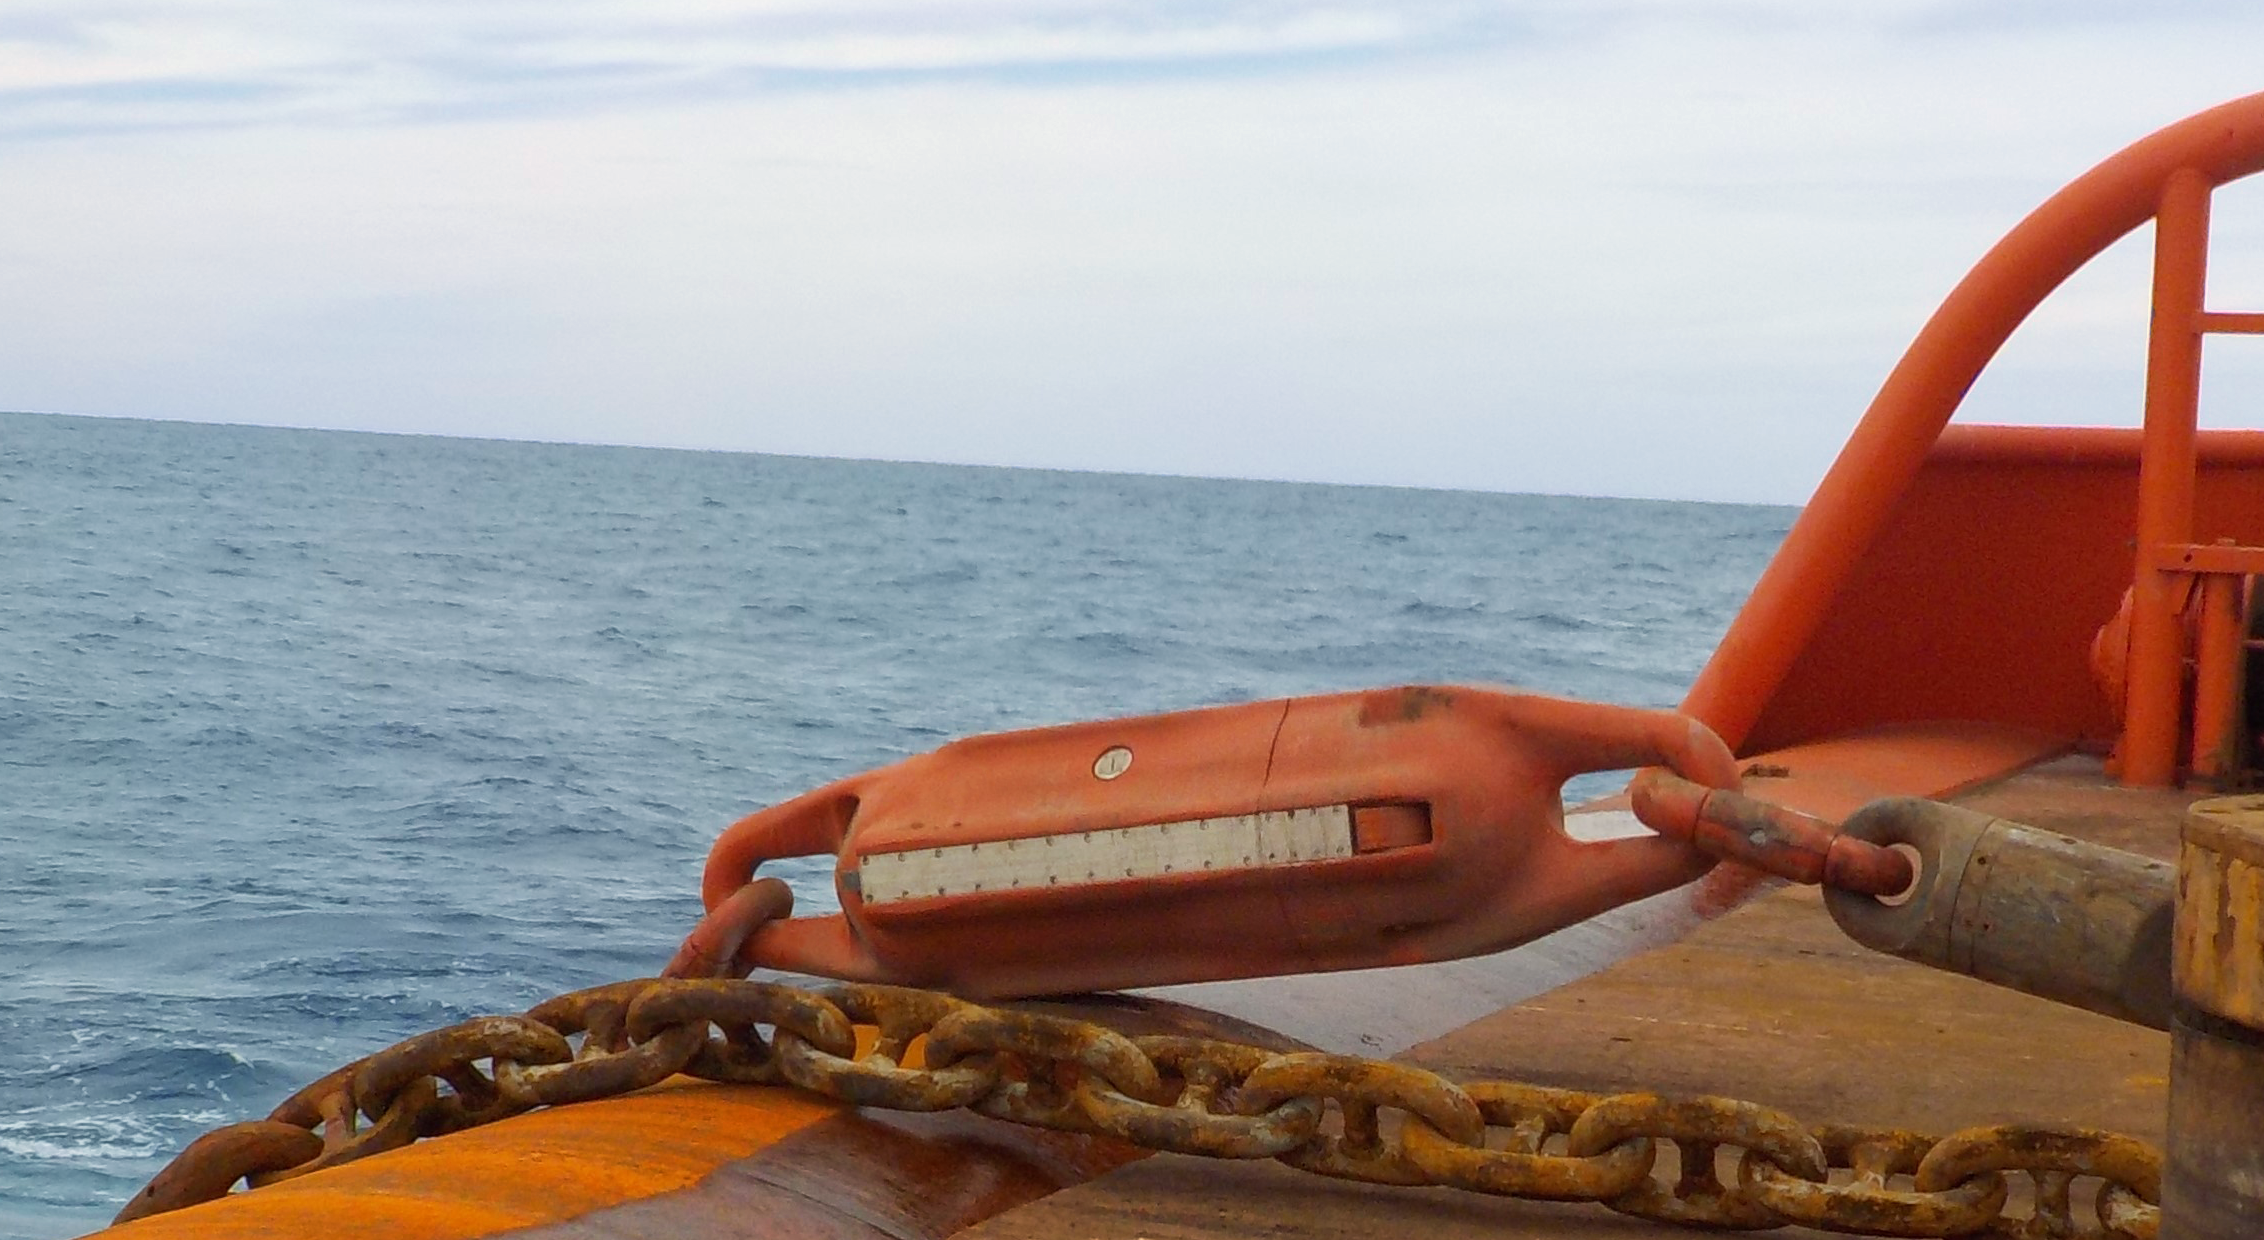 Mooring Release and Monitoring Systems - InterOcean Systems